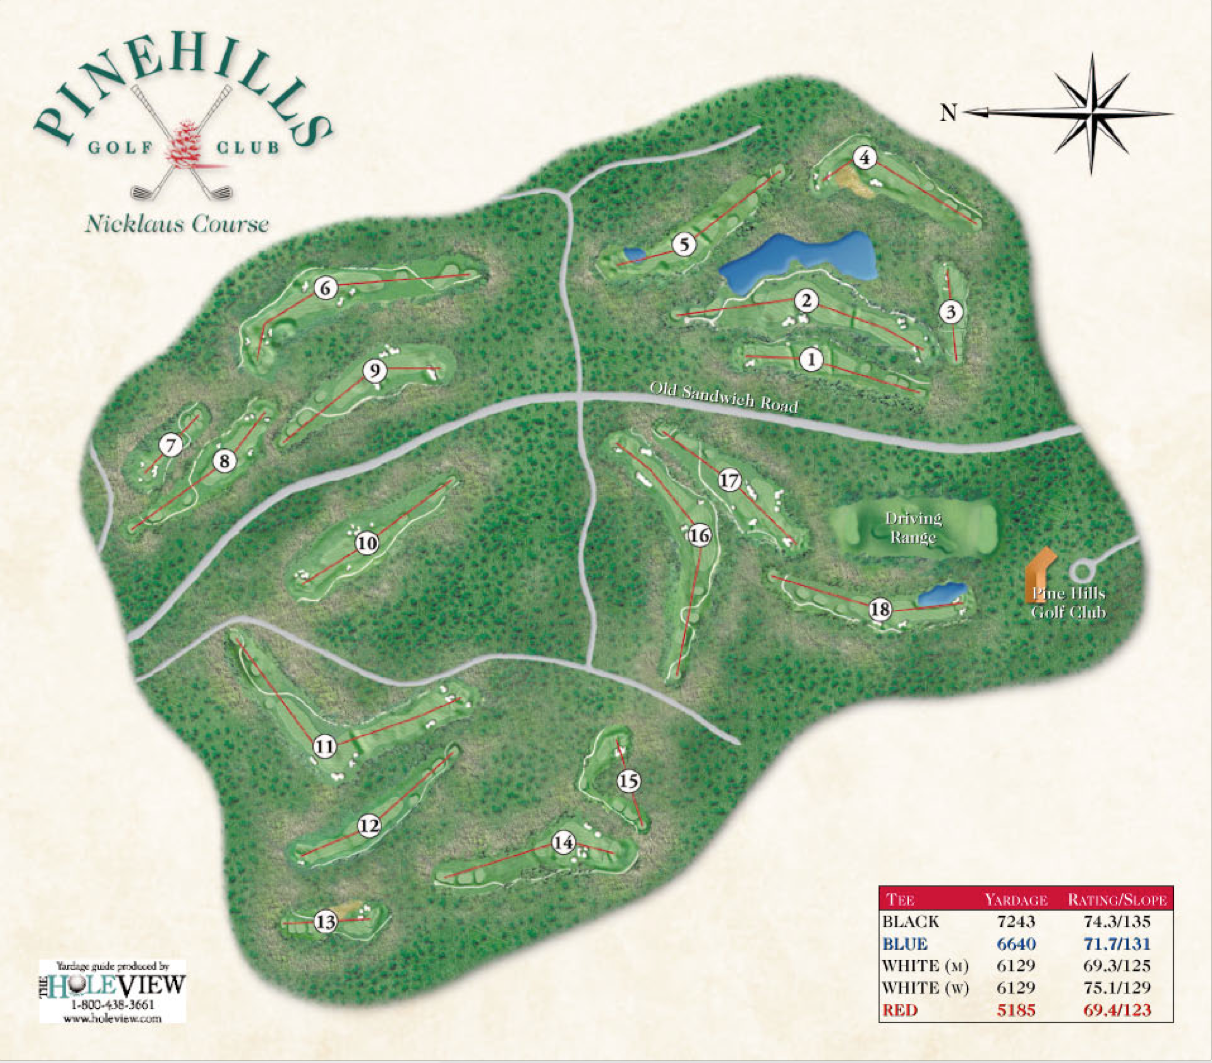 pinehills golf club yardage books